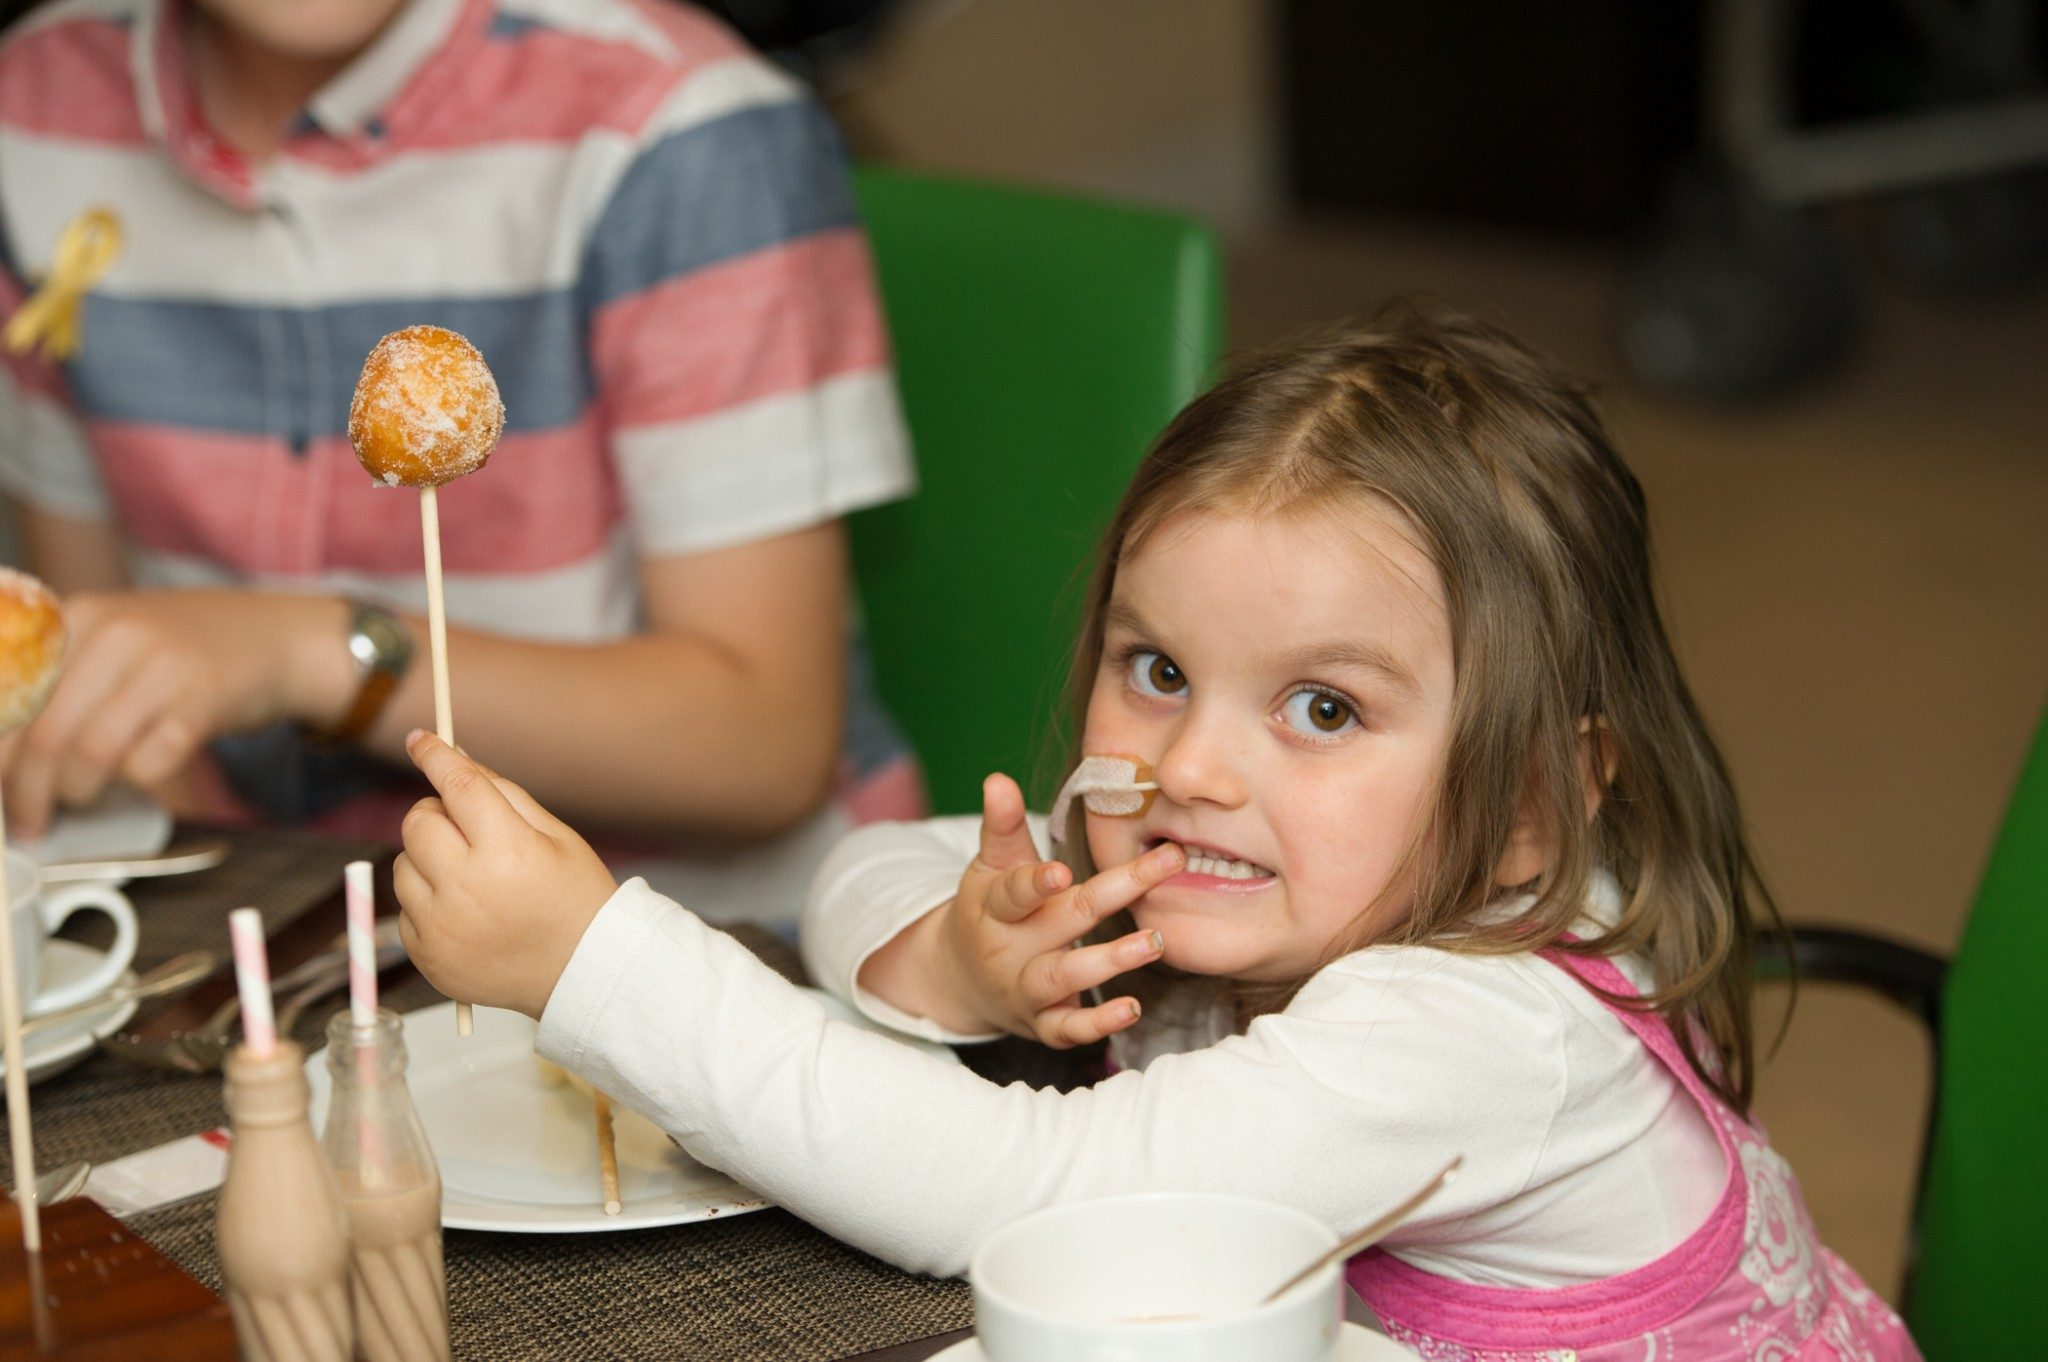 Young girl holding a cake on a stick